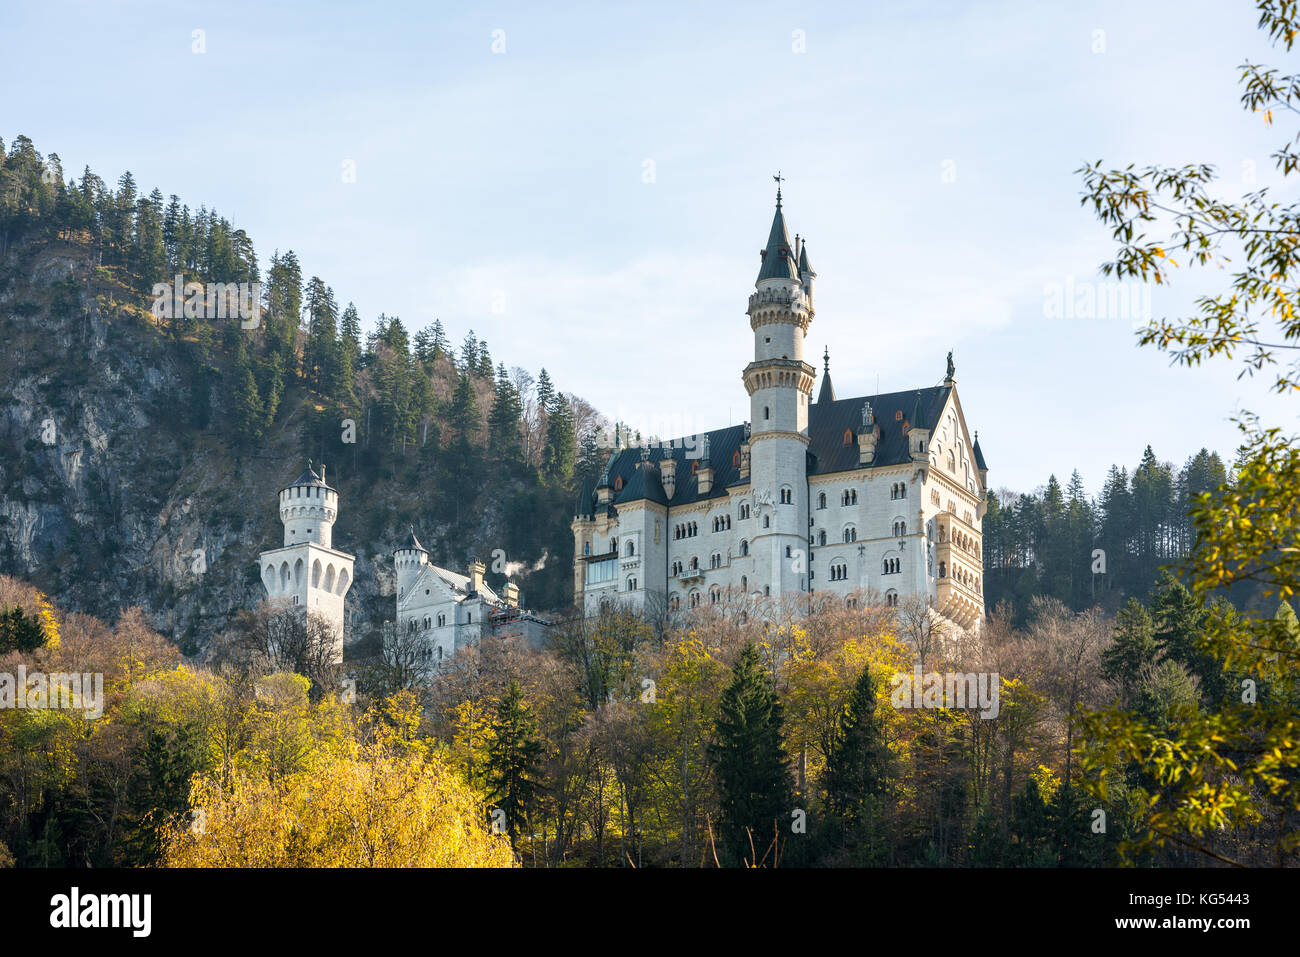 Beautiful view of world-famous Neuschwanstein Castle - Stock Image